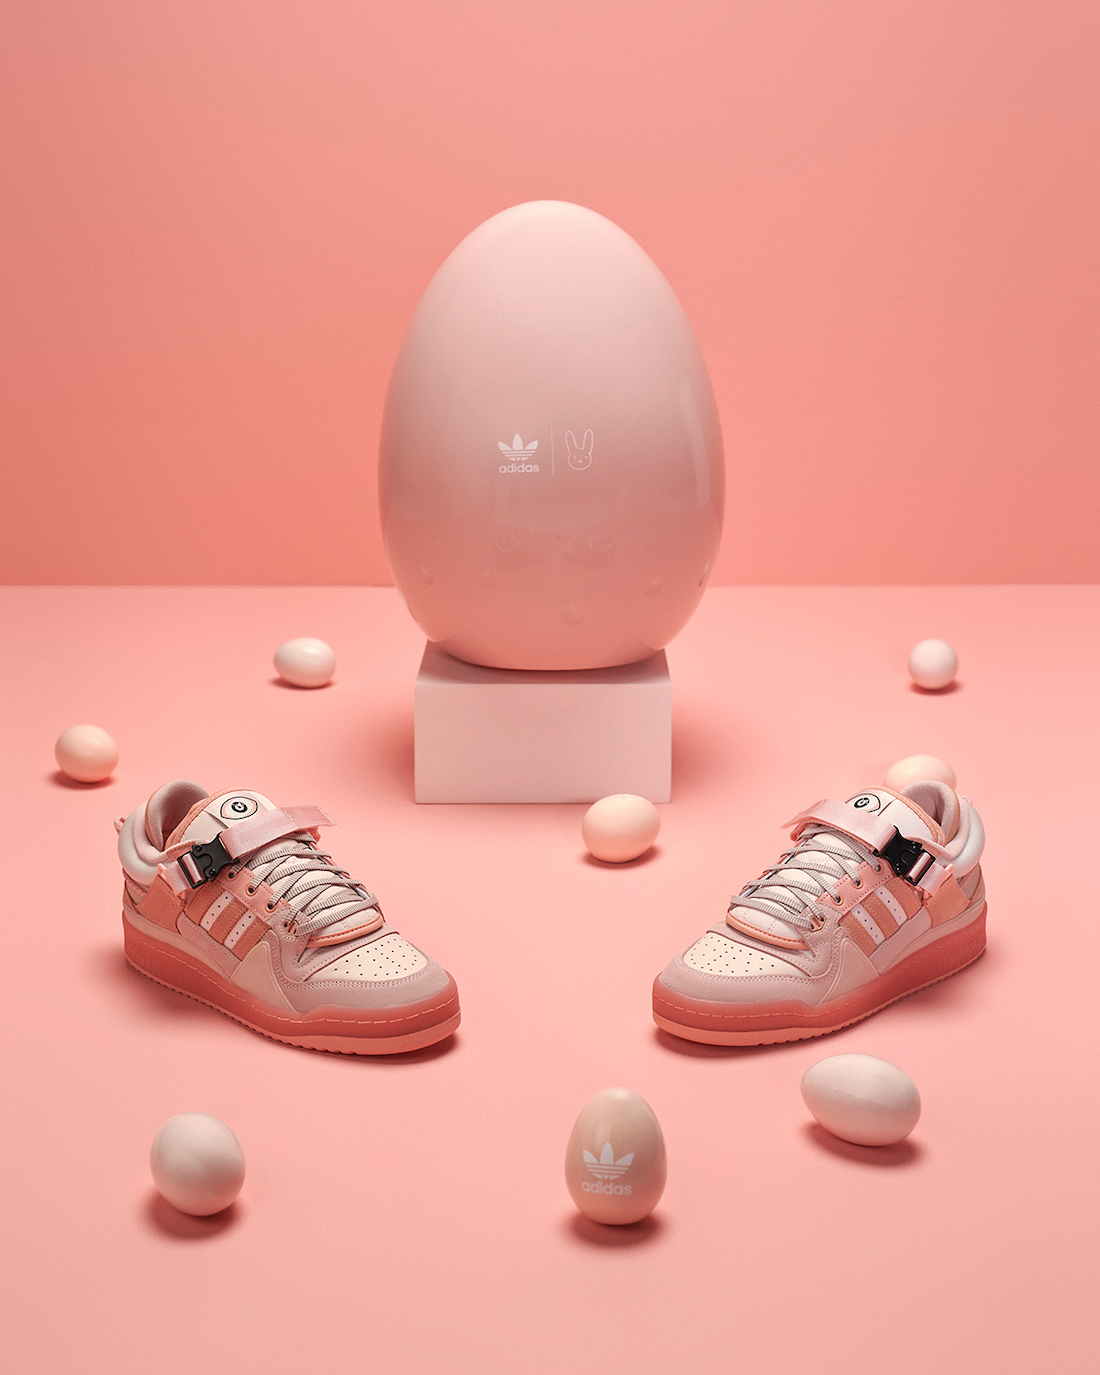 Bad-Bunny-adidas-Forum-Buckle-Low-Easter-Egg-GW0265-Release-Date-1